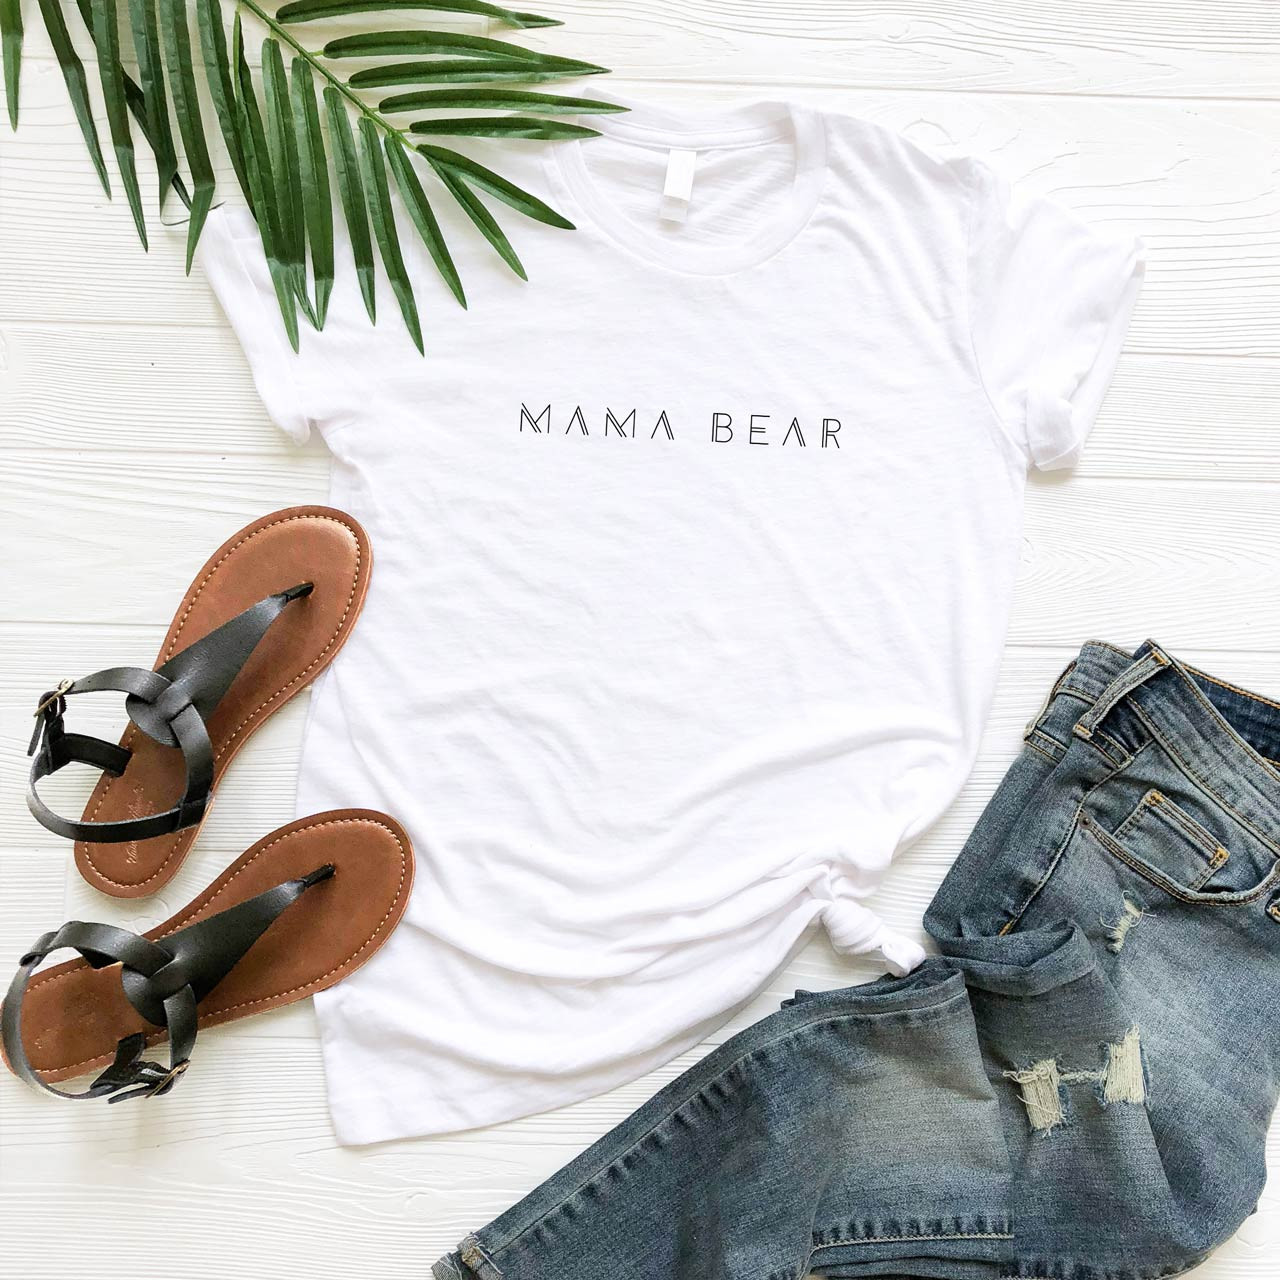 MAMA BEAR Cotton T-Shirt (Black on White) from The Printed Home